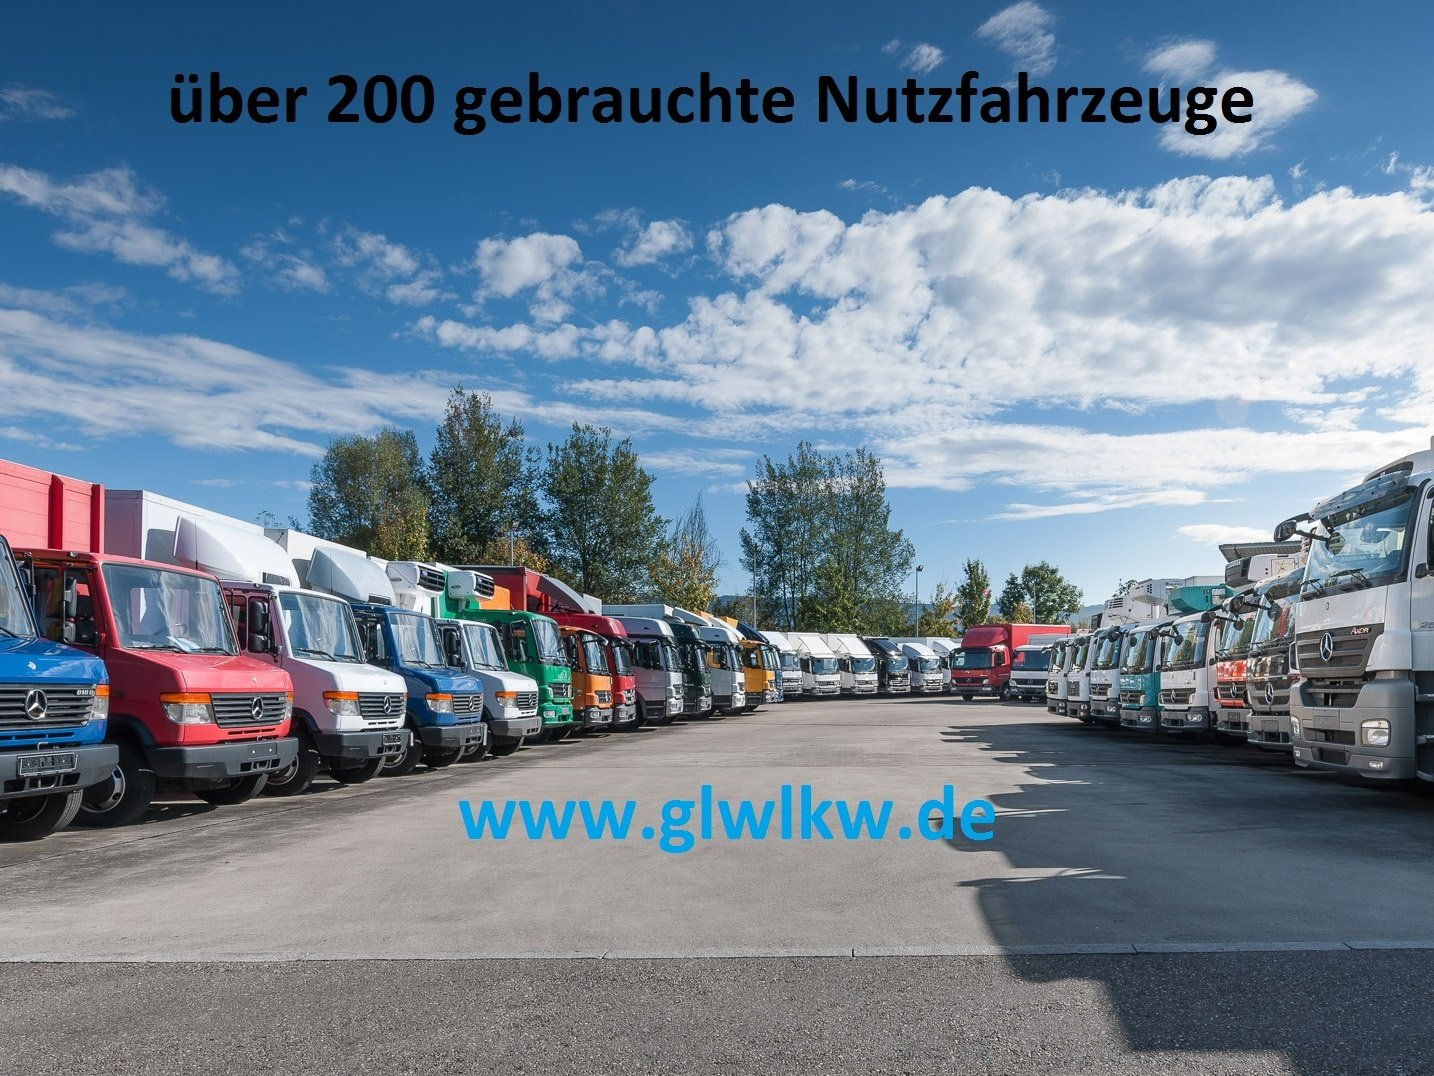 ATEGO IV 816 L Pritsche/Pl  6,10 m LBW 1 to.+AHK